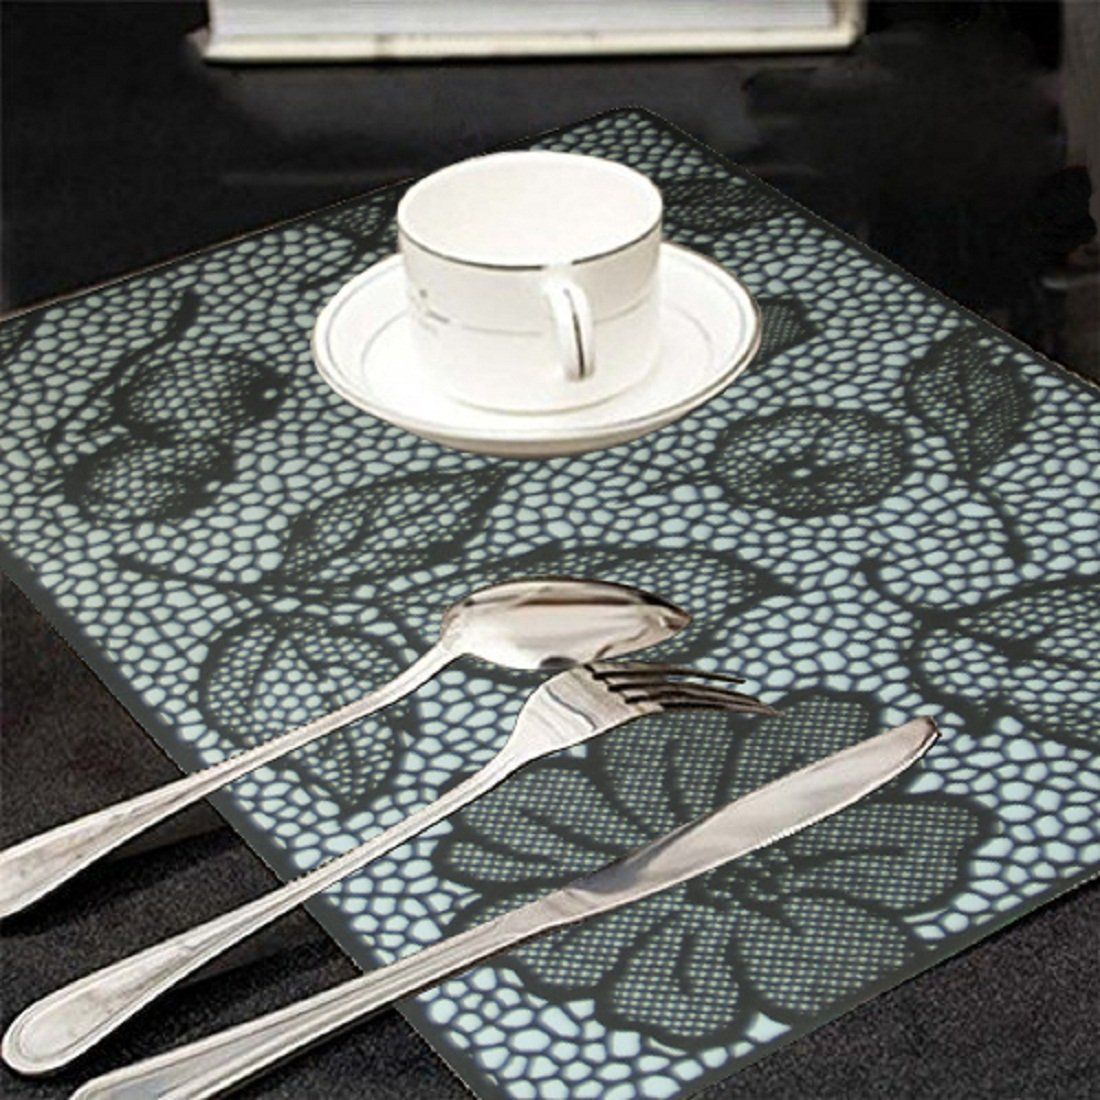 Kuber Industries Black And White Print Table Placemats Set Of 6 Table Mats And 6 Coasters Plastic Kitchen Linen Assorted Kitchen Linens Table Mats Placemats